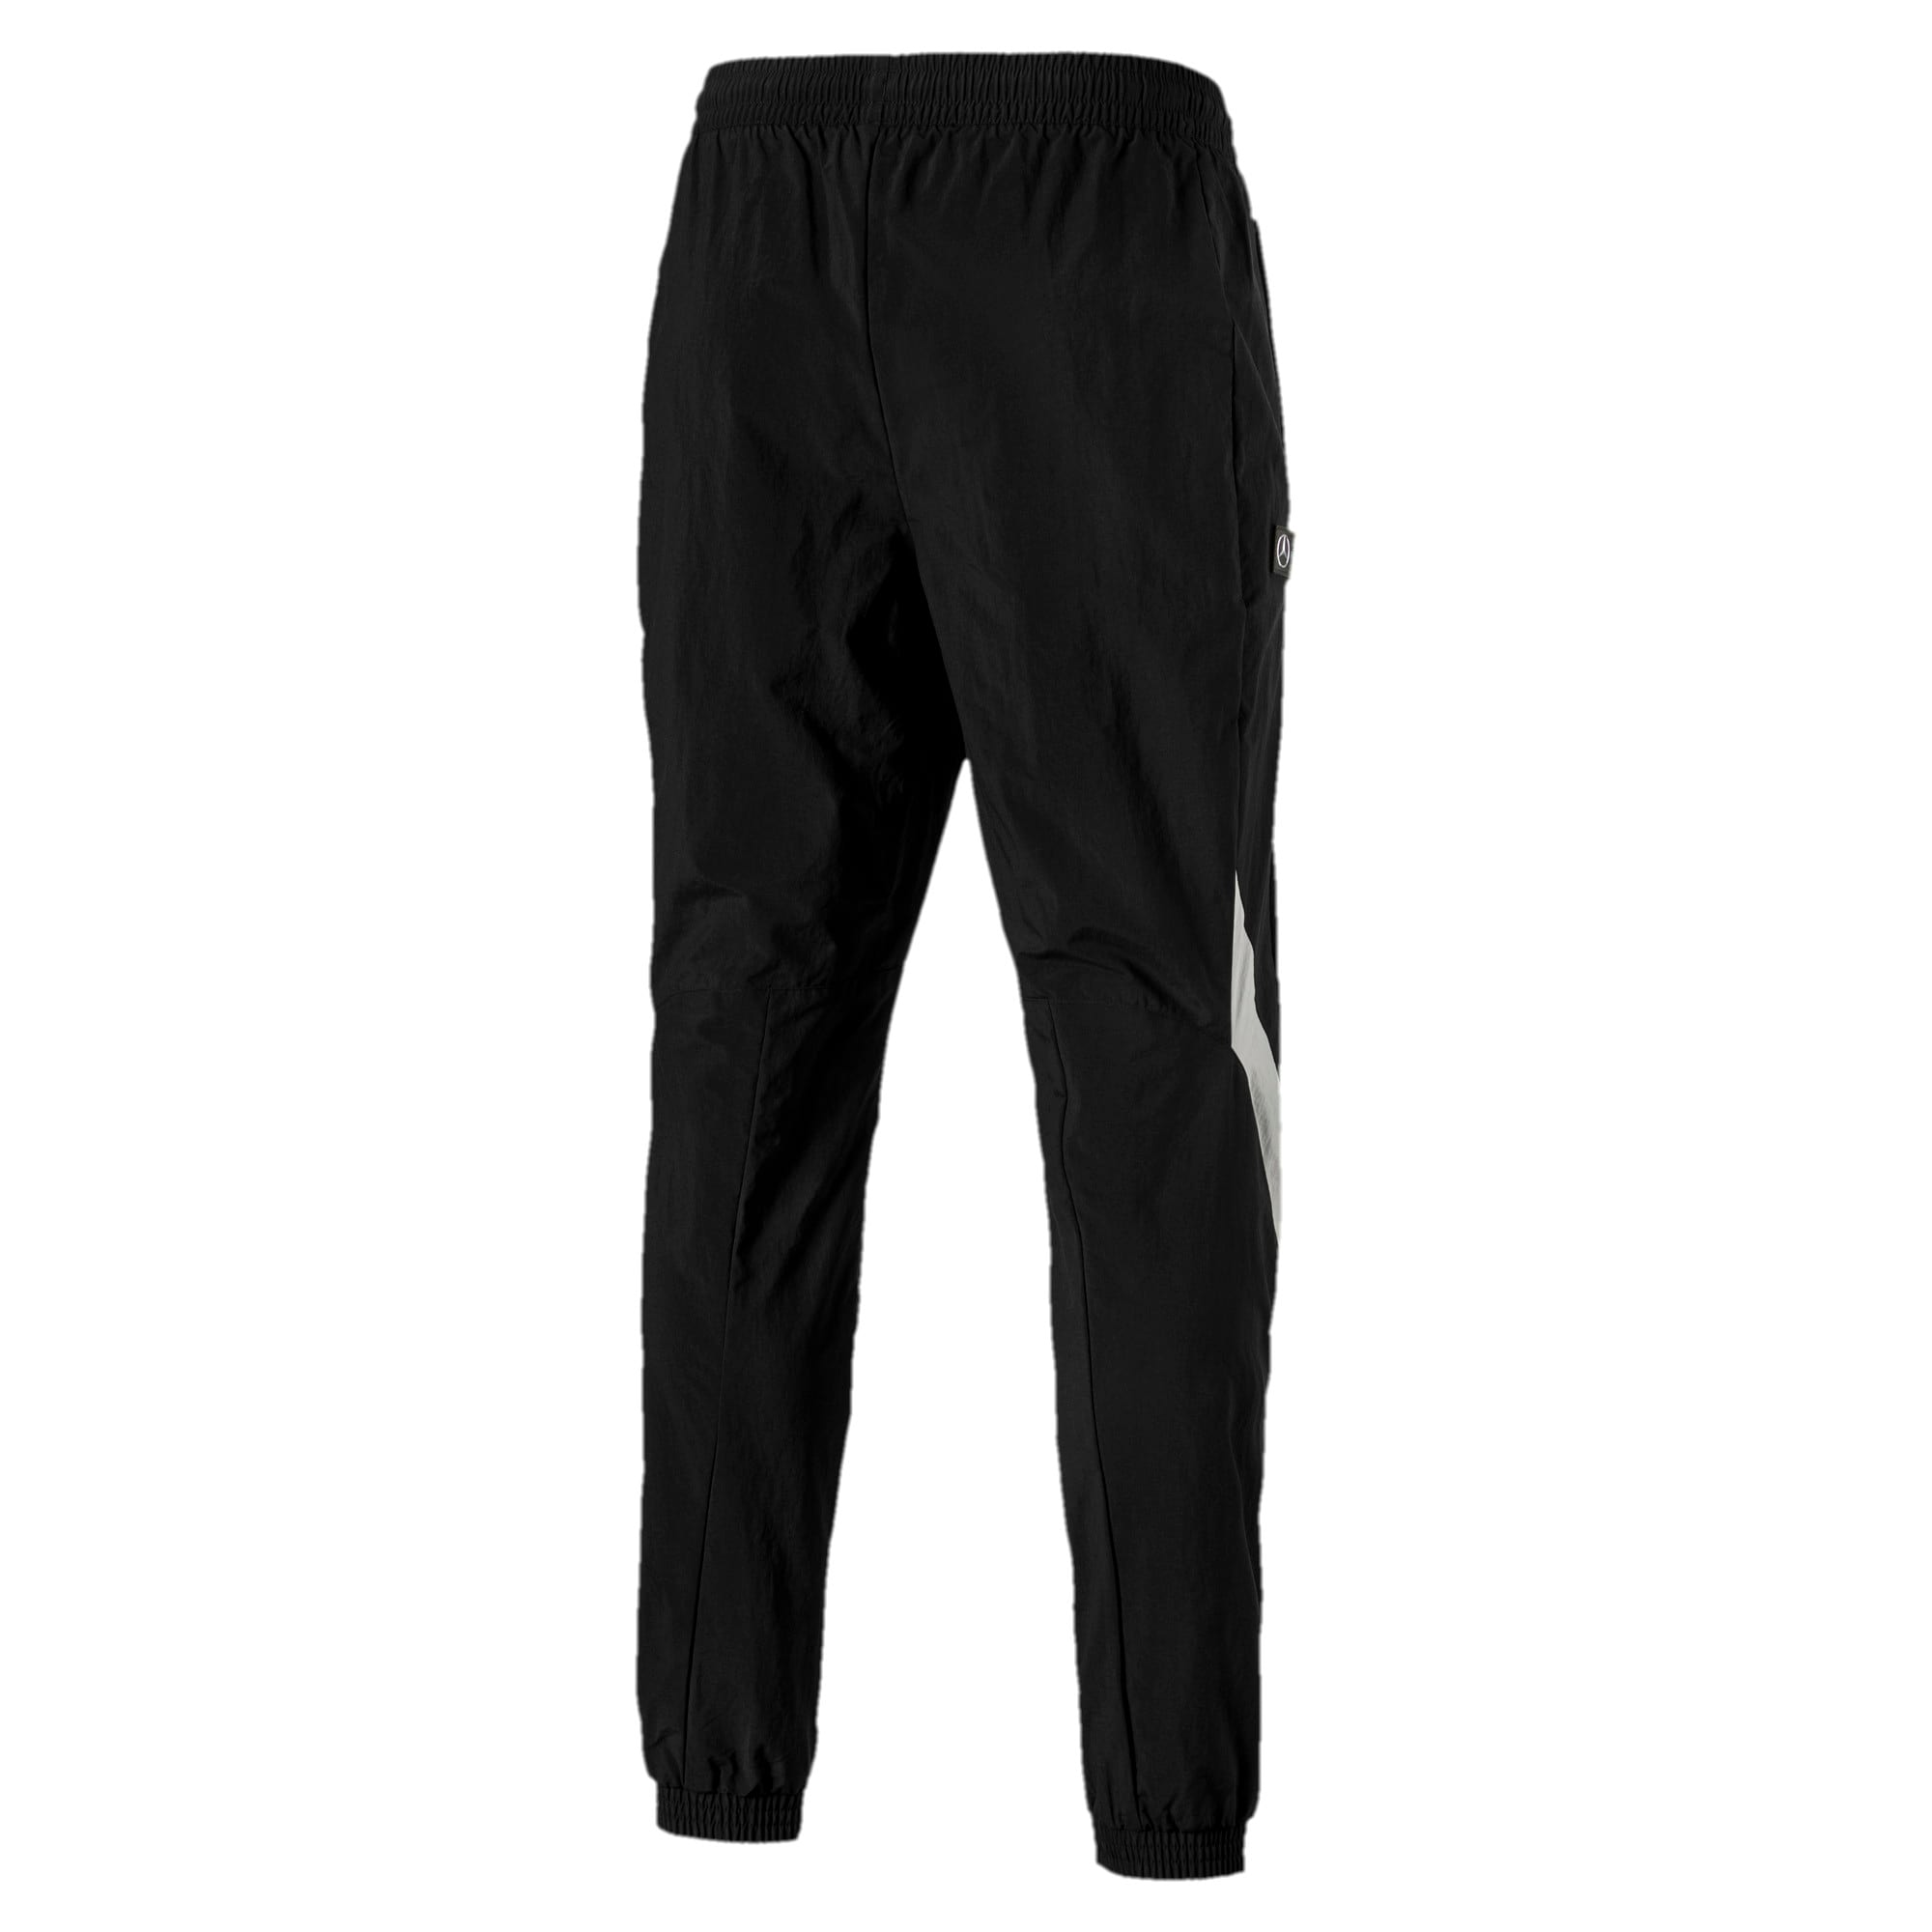 Thumbnail 2 of MERCEDES AMG PETRONAS Herren Gewebte Hose, Puma Black, medium